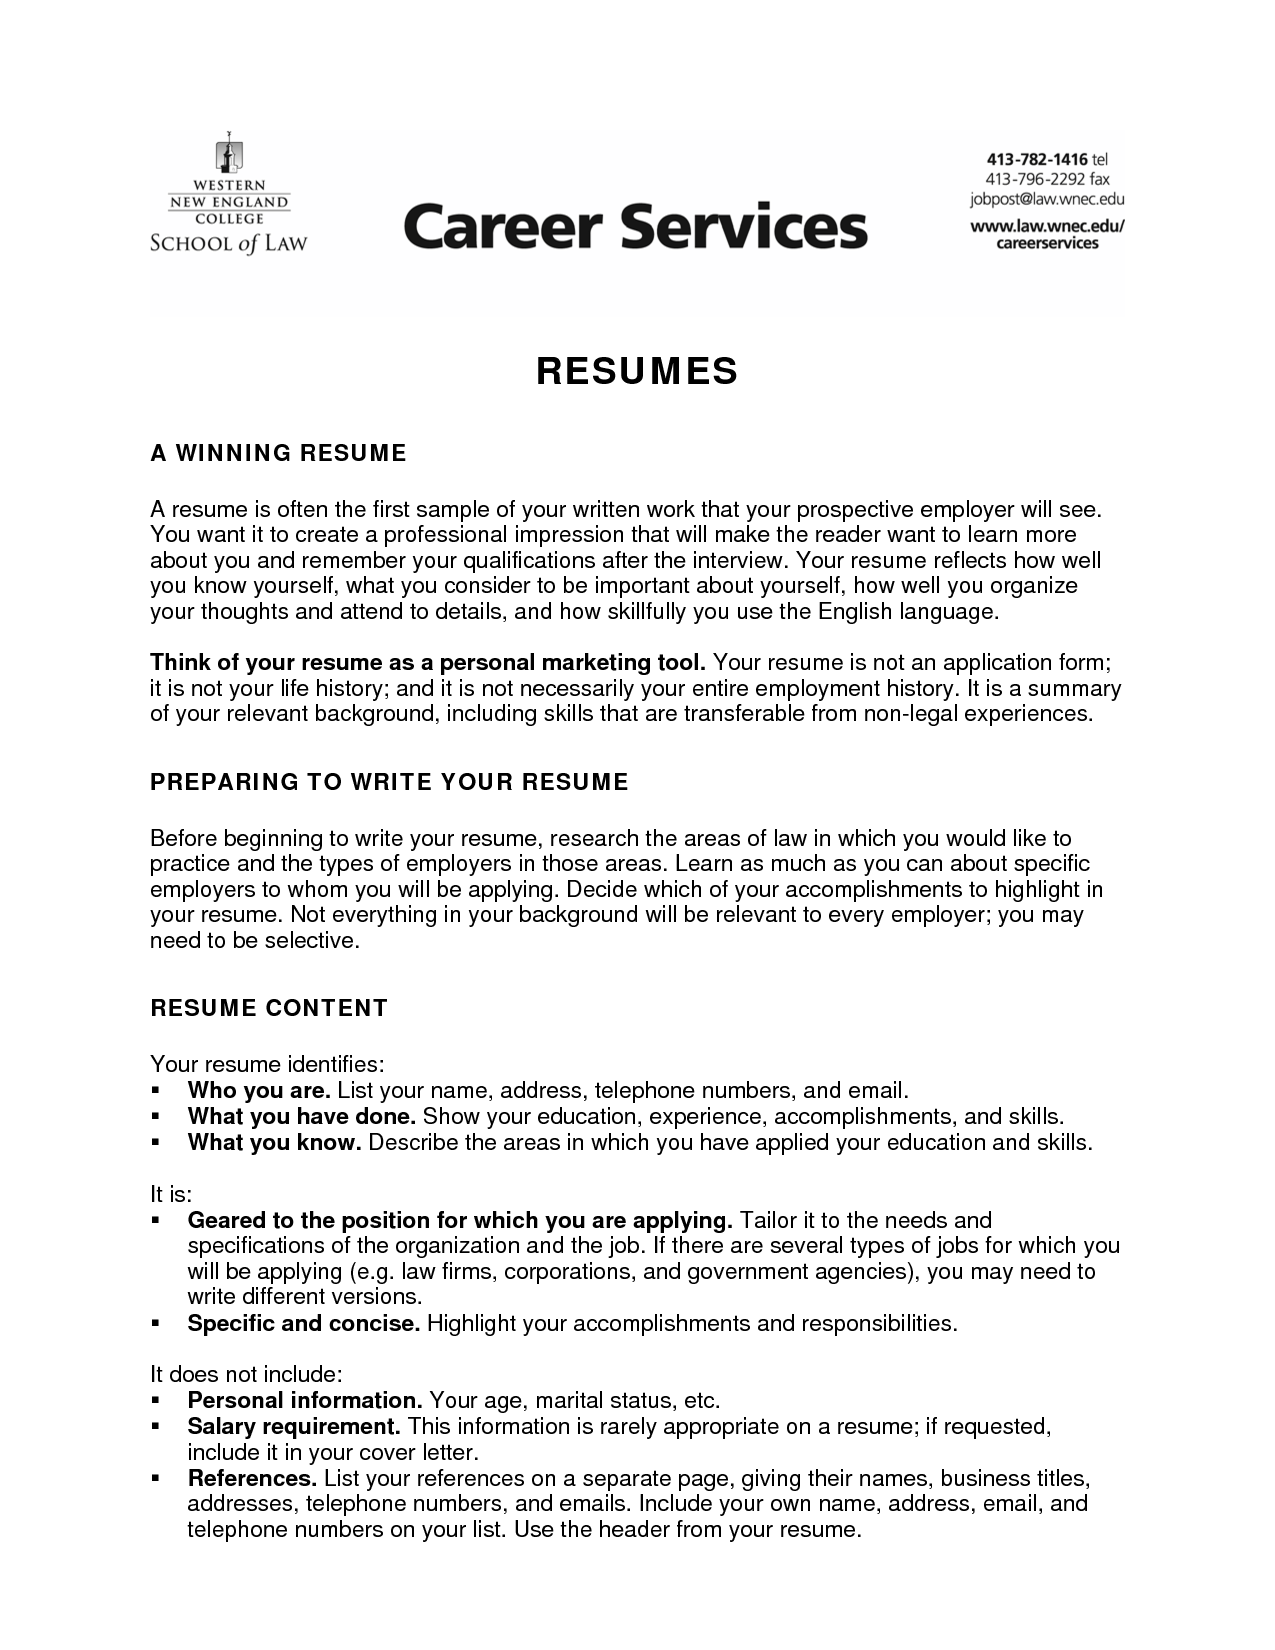 How To Write An Objective For Resume Objective Resume Criminal Justice  Httpwwwresumecareer